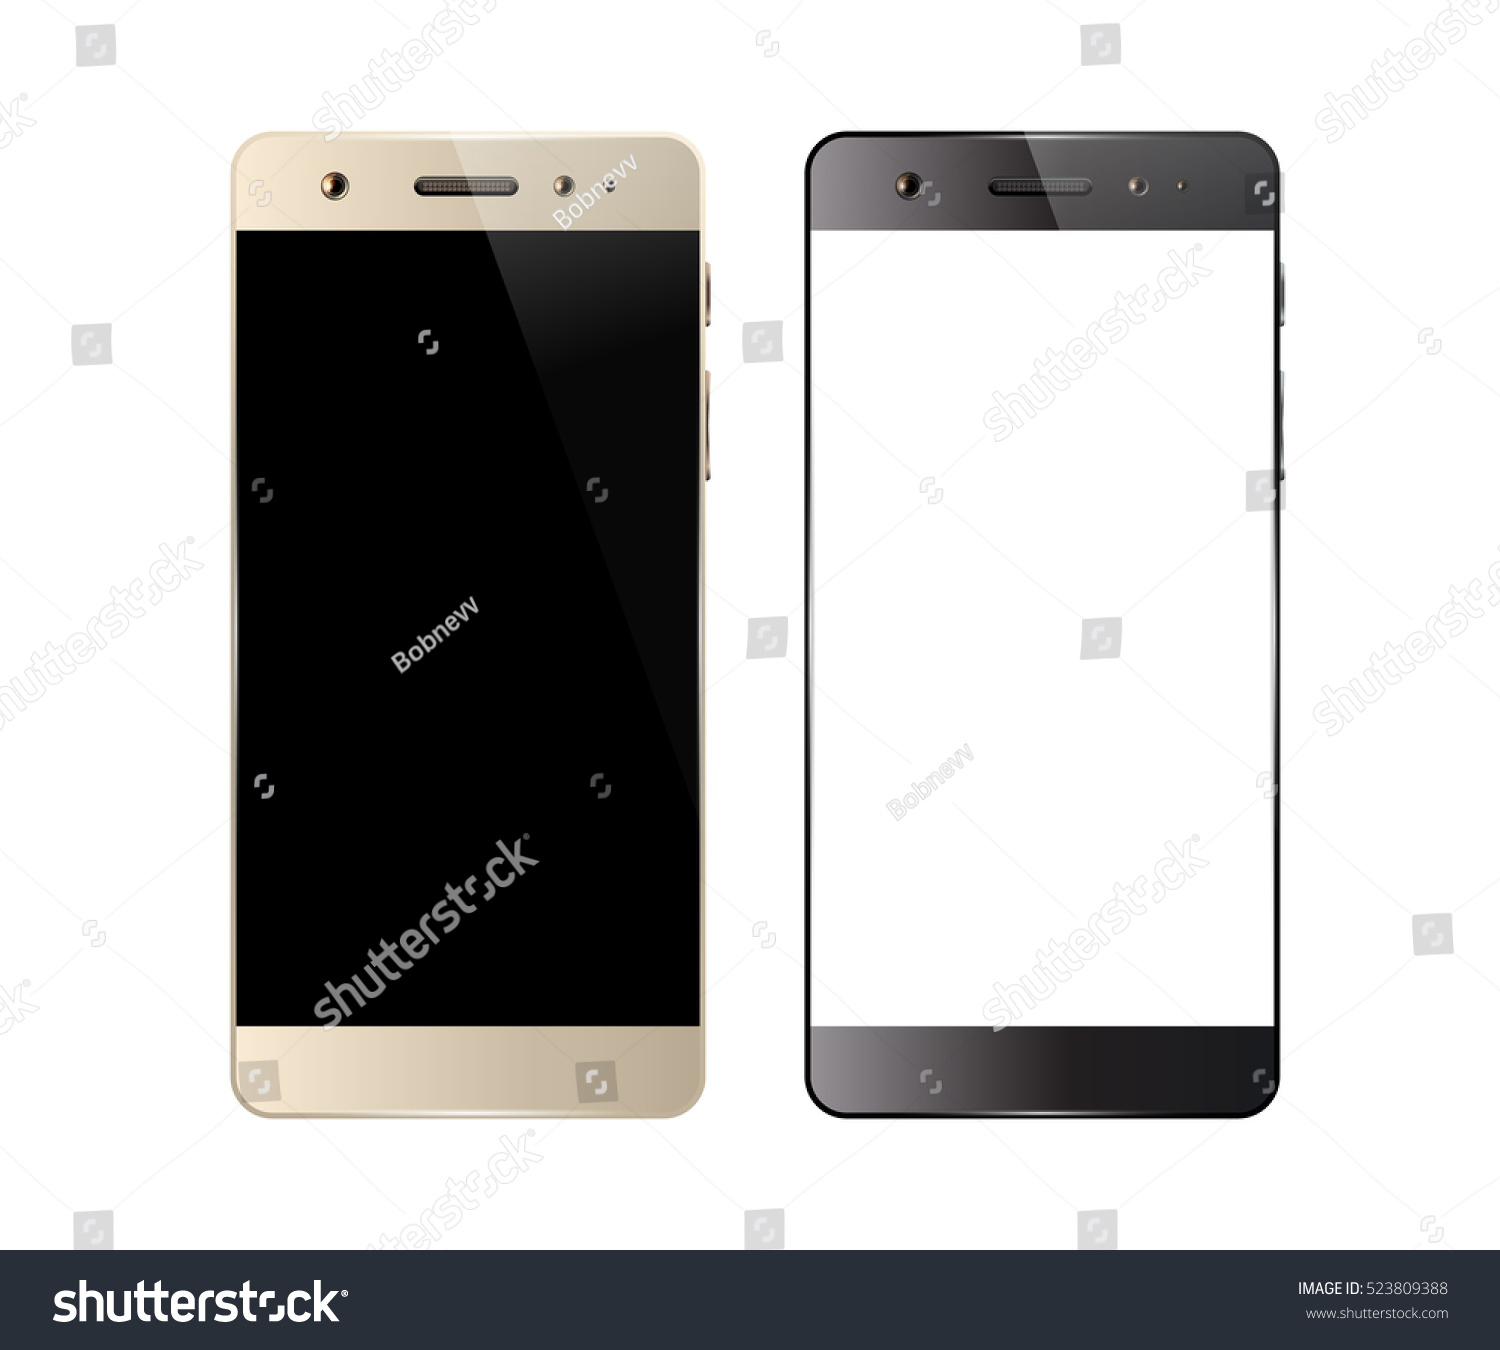 Smartphones Isolated On White Background Mobile Stock. Auto Insurance Companies In Florida. Arlington Travel Clinic Web Security Firewall. Foreign Exchange Markets And Transactions. Jonas Clarke Middle School Backup Exec Agent